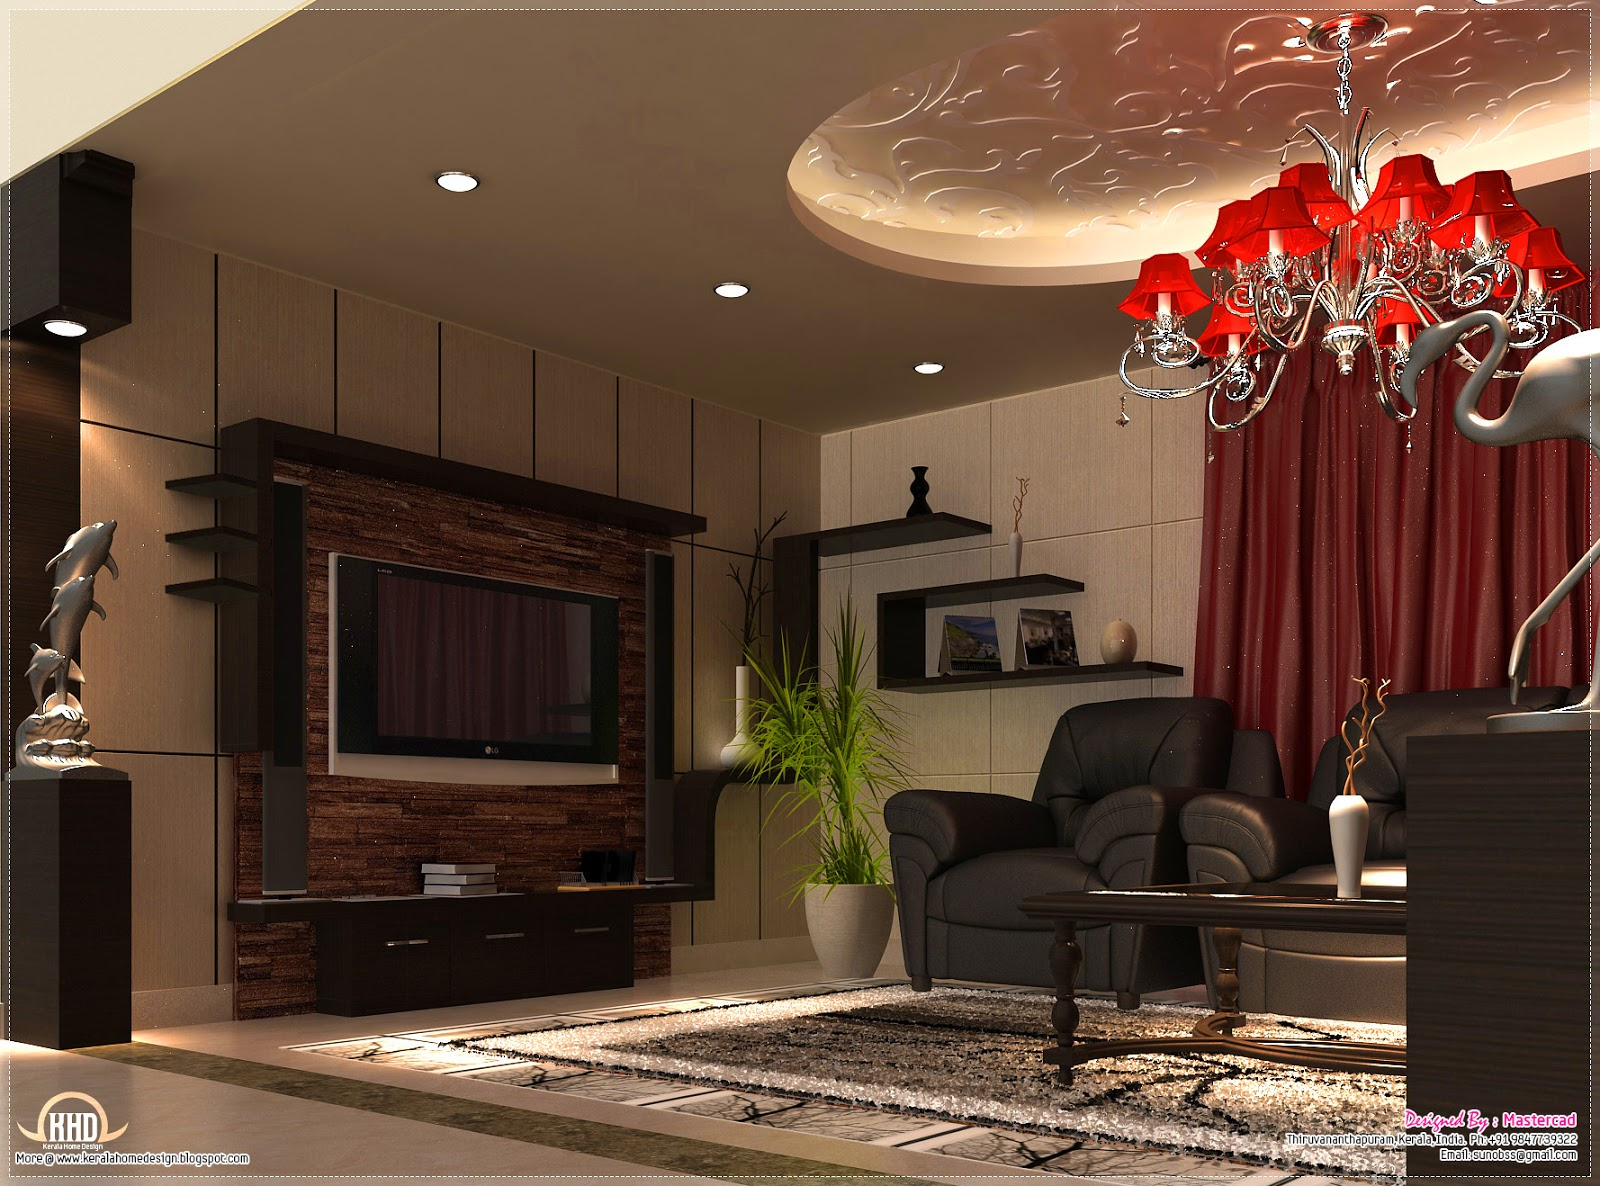 Interior design ideas home kerala plans for House interior designs for small houses